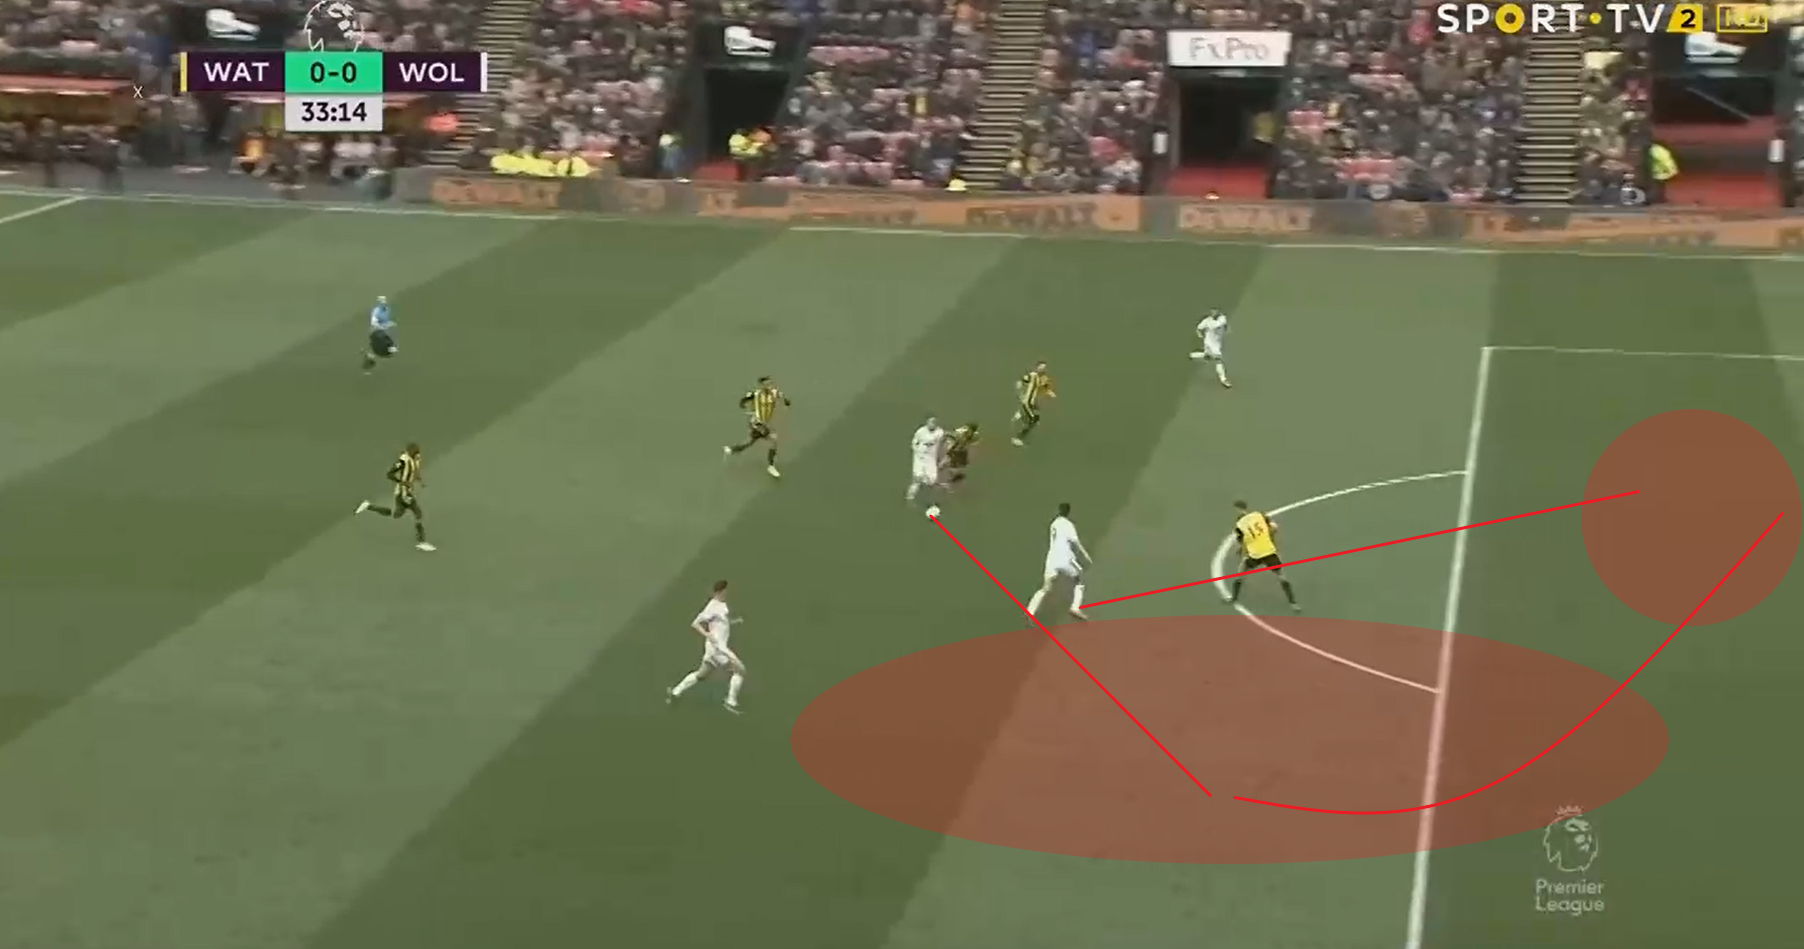 Premier League 2018/19 Tactical Analysis Statistics: Watford vs Wolves